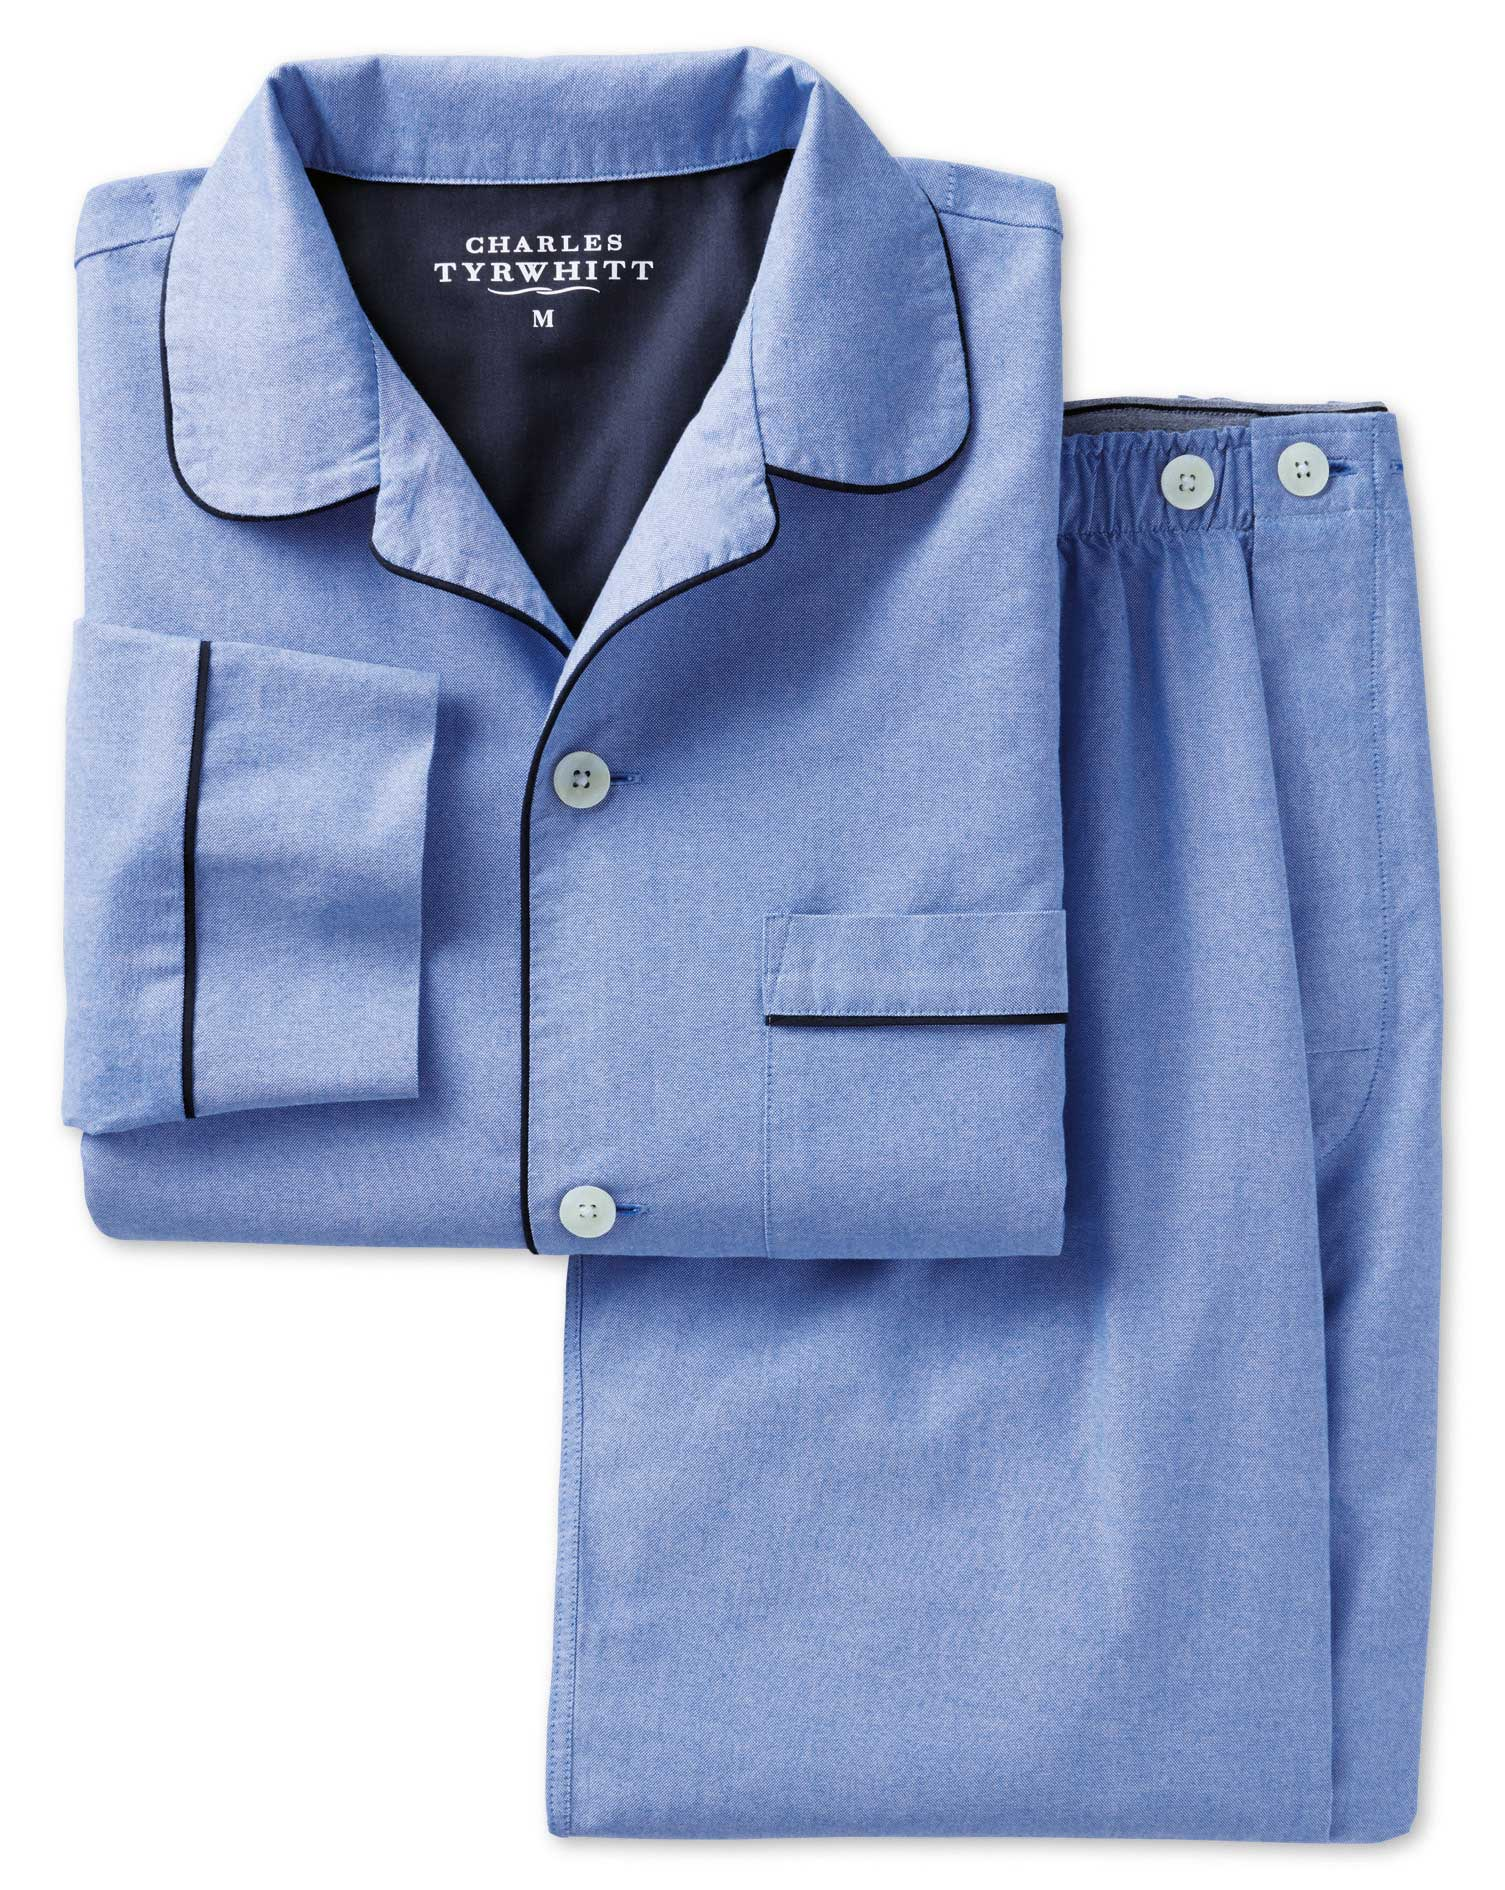 Sky Cotton Pyjama Set Size Large by Charles Tyrwhitt